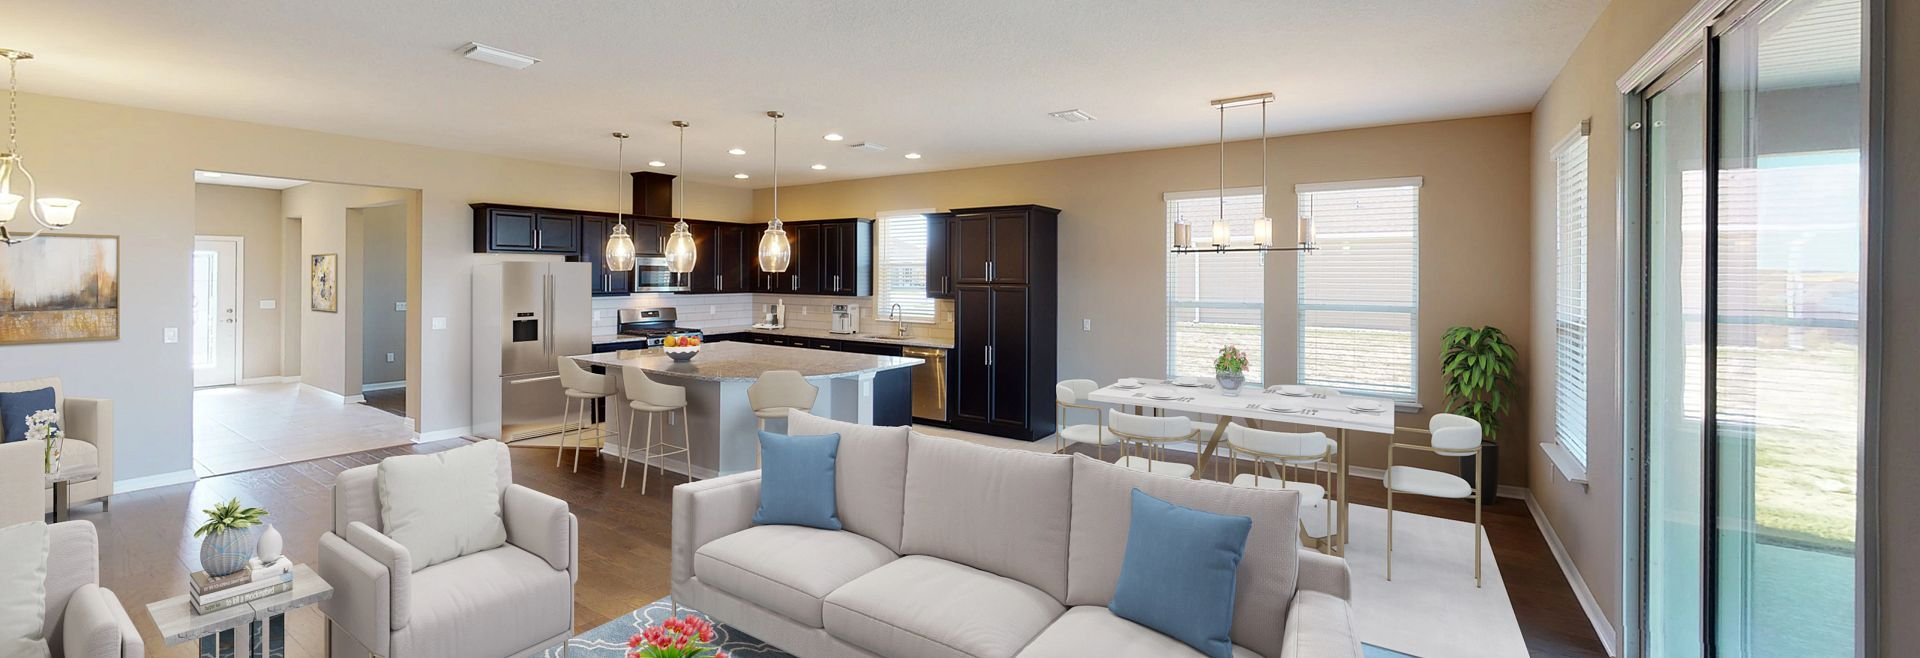 Living Area featured in the Declare By Shea Homes - Trilogy in Orlando, FL